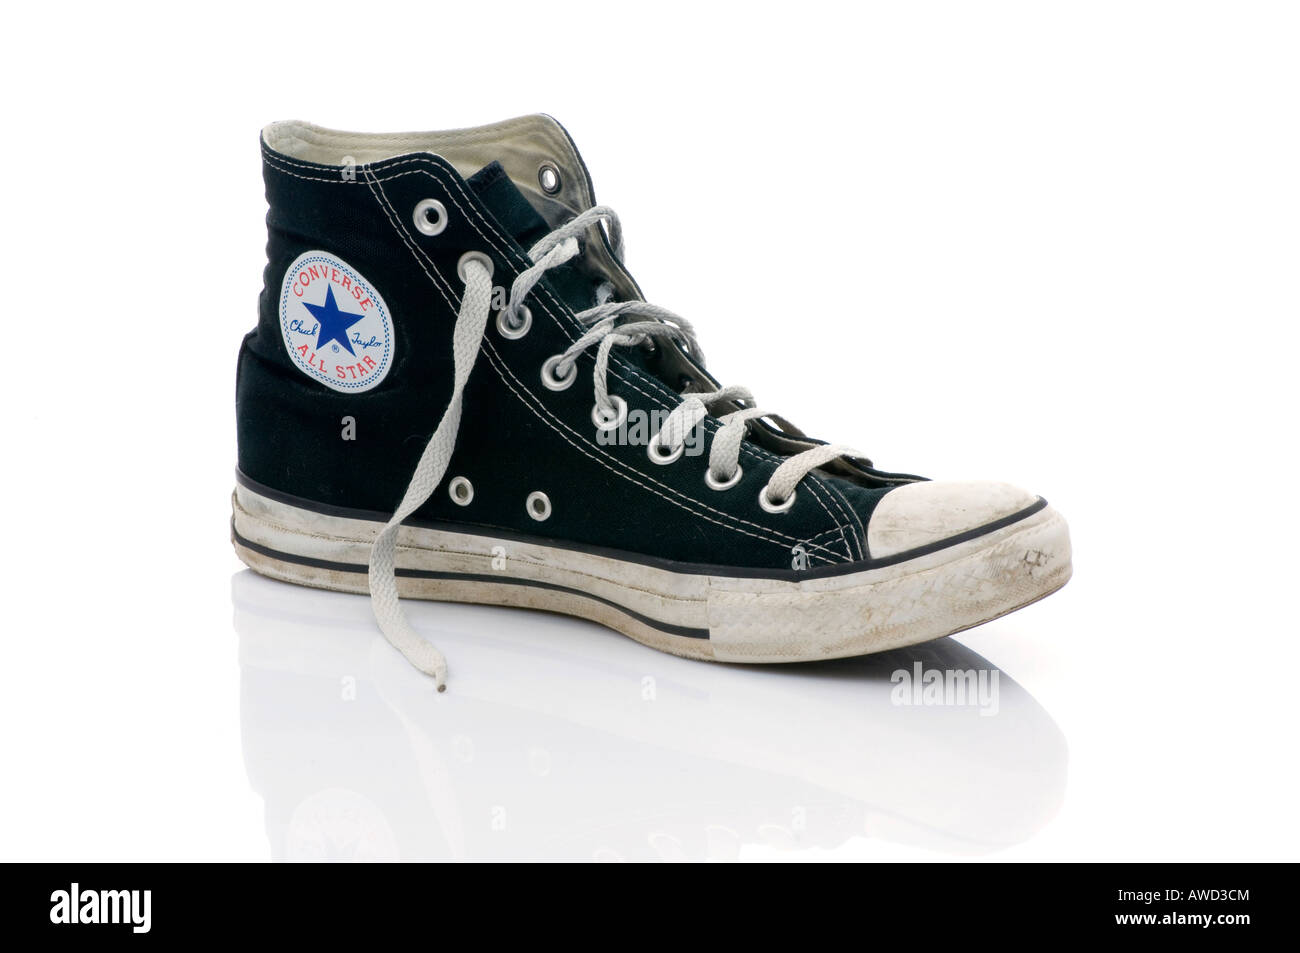 3a49078d3a1 Converse All Star Photos   Converse All Star Images - Alamy